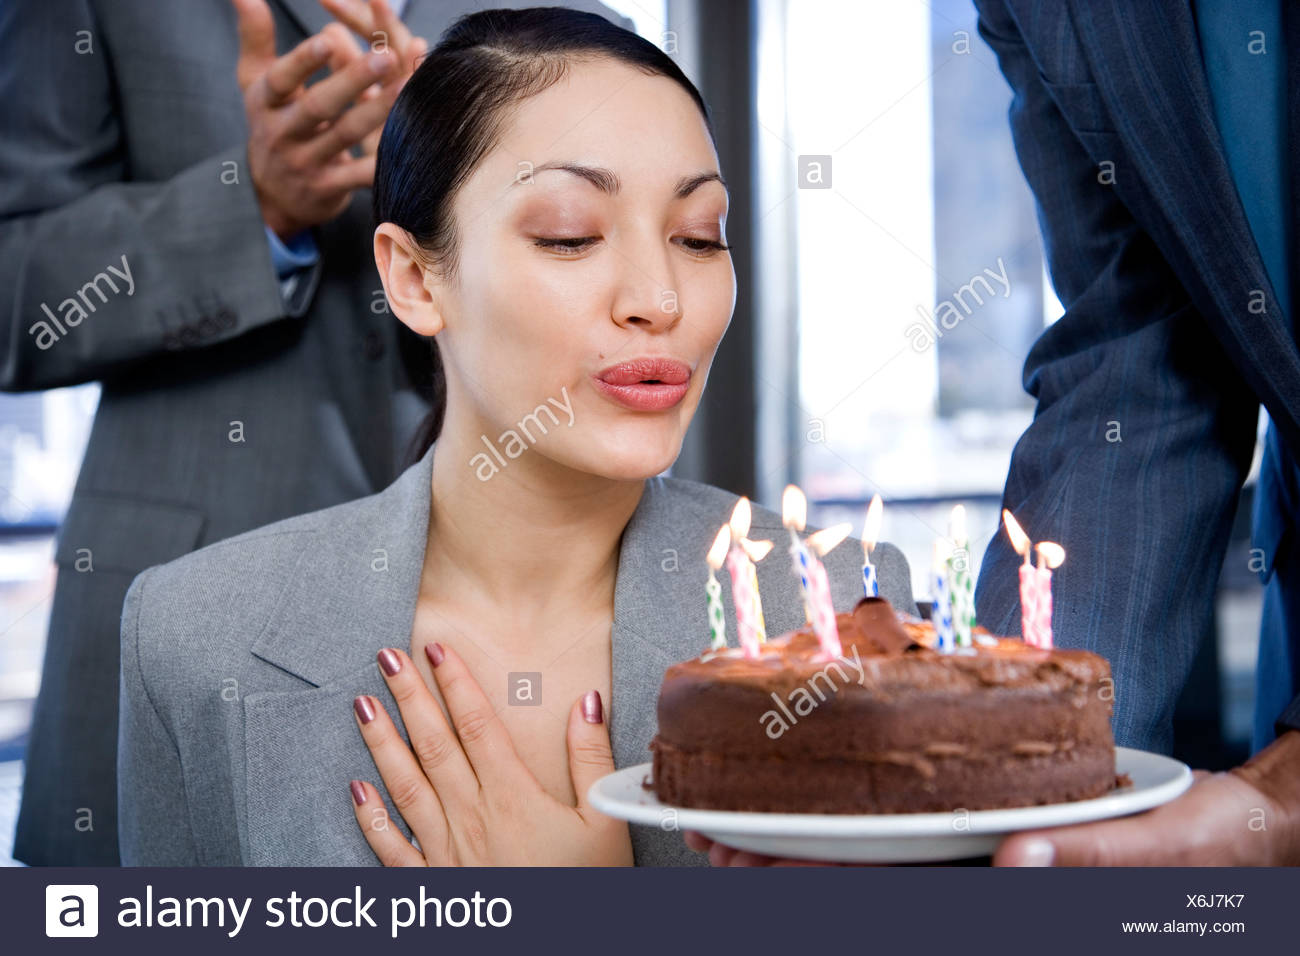 A Businesswoman Blowing Out Her Birthday Cake Candles At The Office